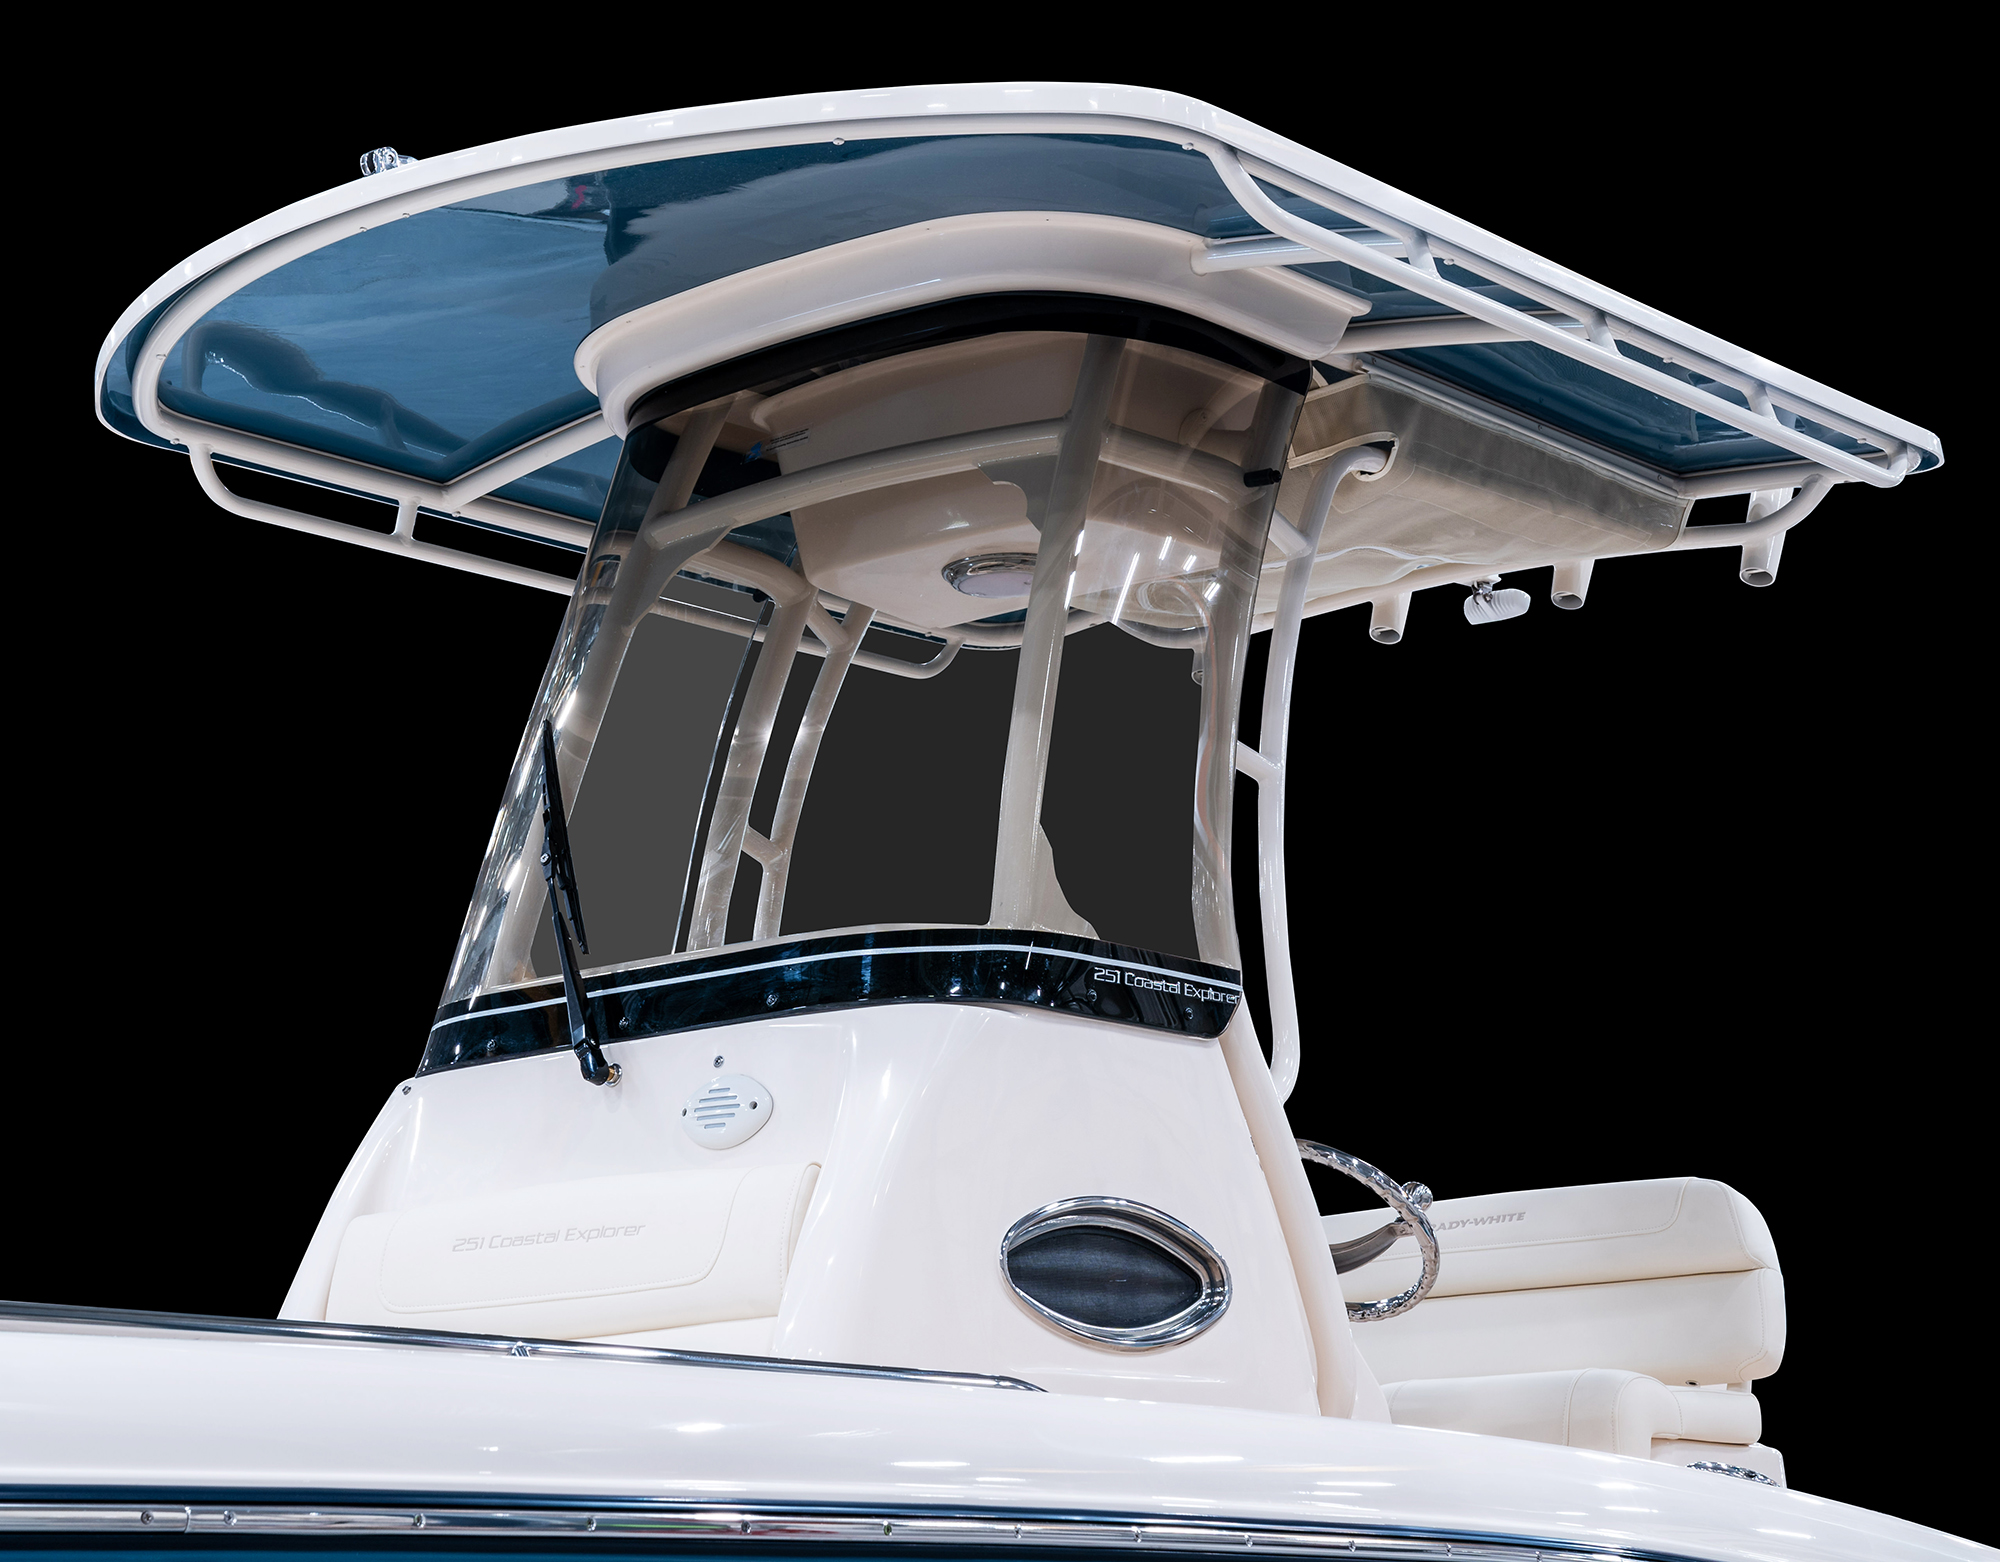 Grady-White 251 CE, 25-foot coastal explorer scratch resistant acrylic windshield integrated with T-top